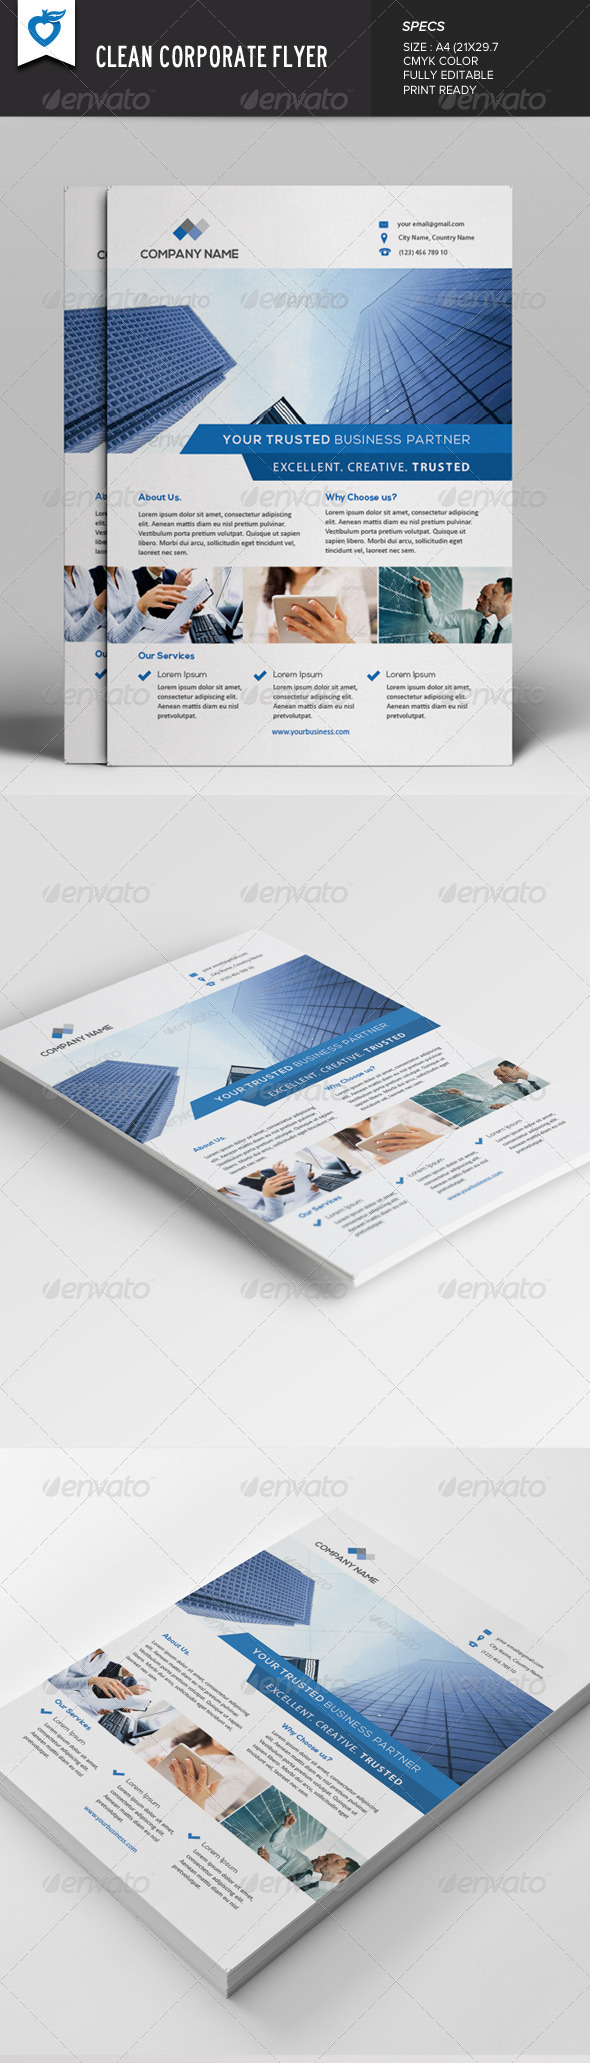 GraphicRiver Clean Corporate Flyer v2 7813253